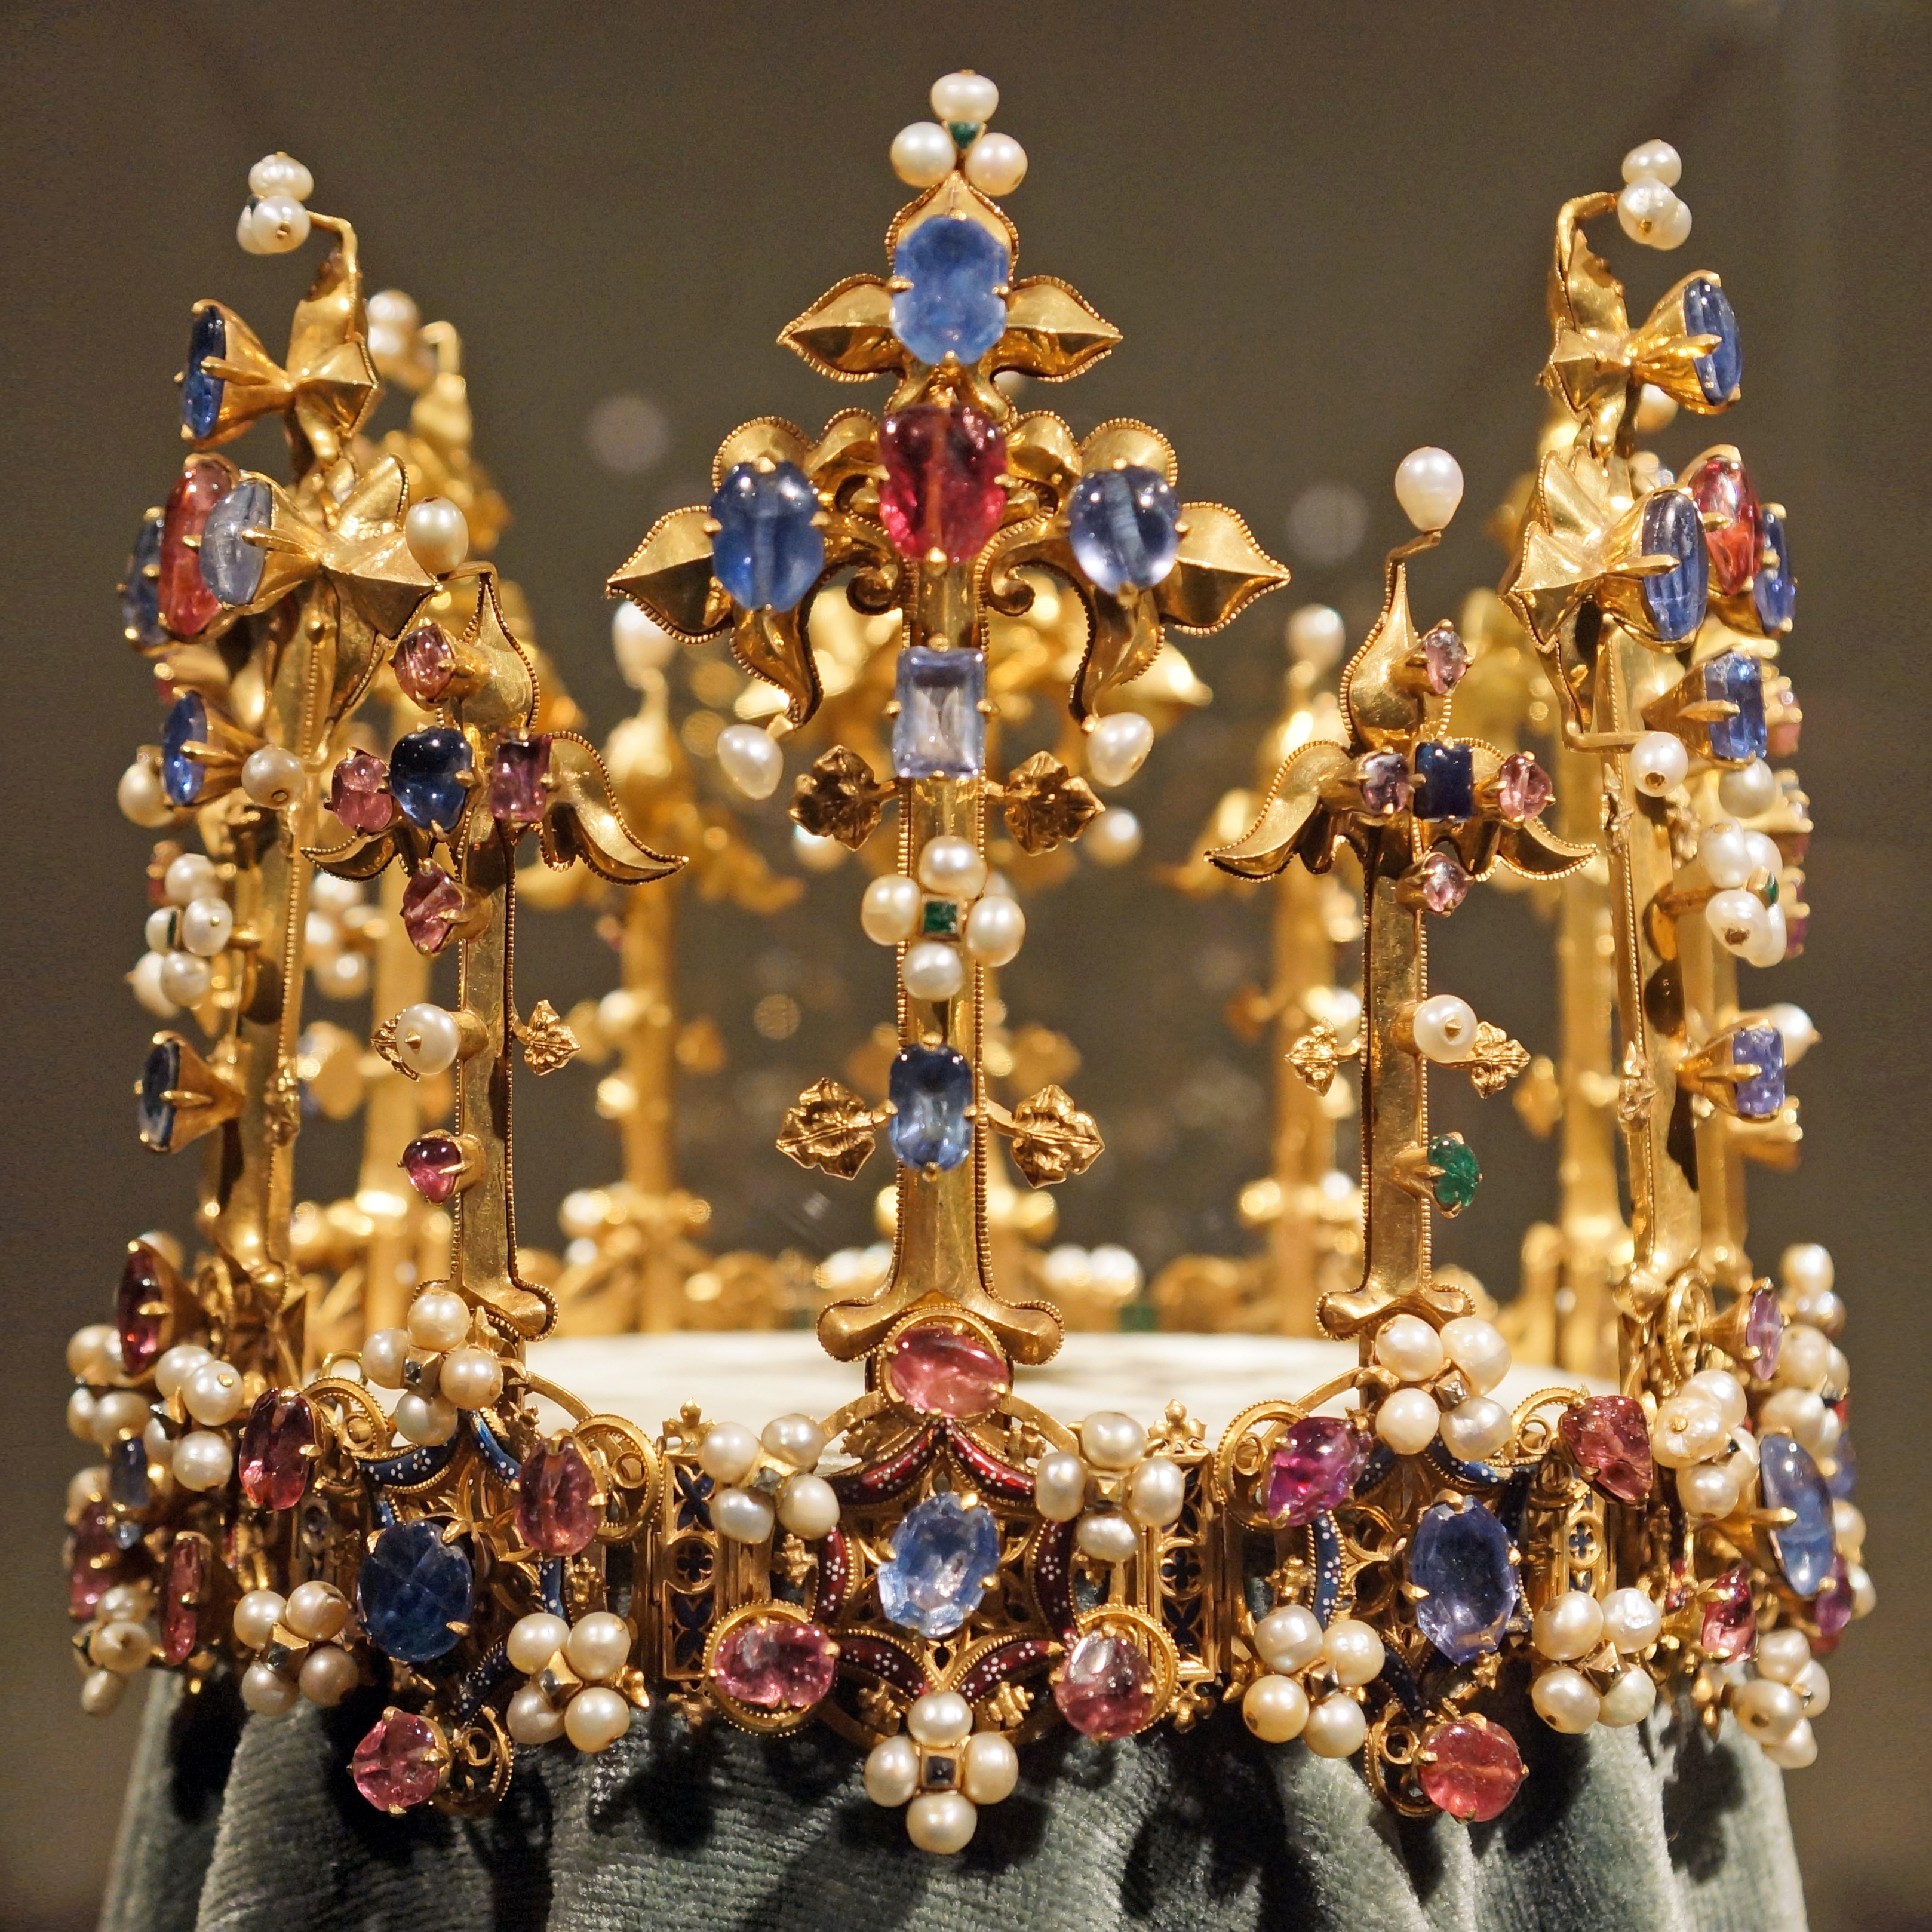 Crown_of_Princess_Blanche